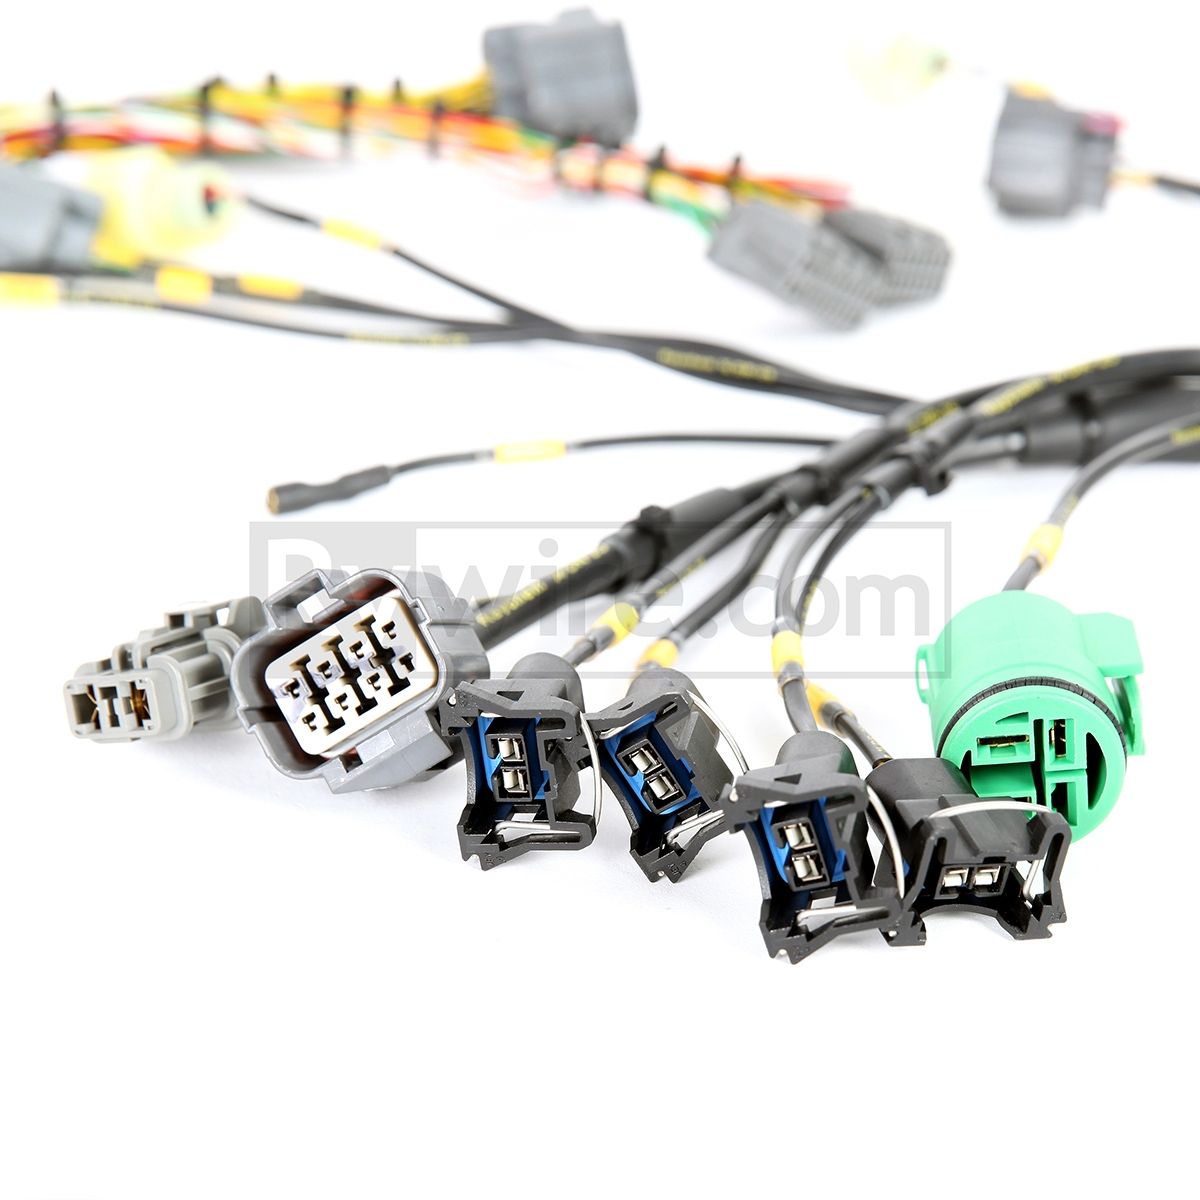 1992 Honda Civic Stereo Wiring Harness Obd Mil Spec Series Tucked Engine Rywire Com Rebel